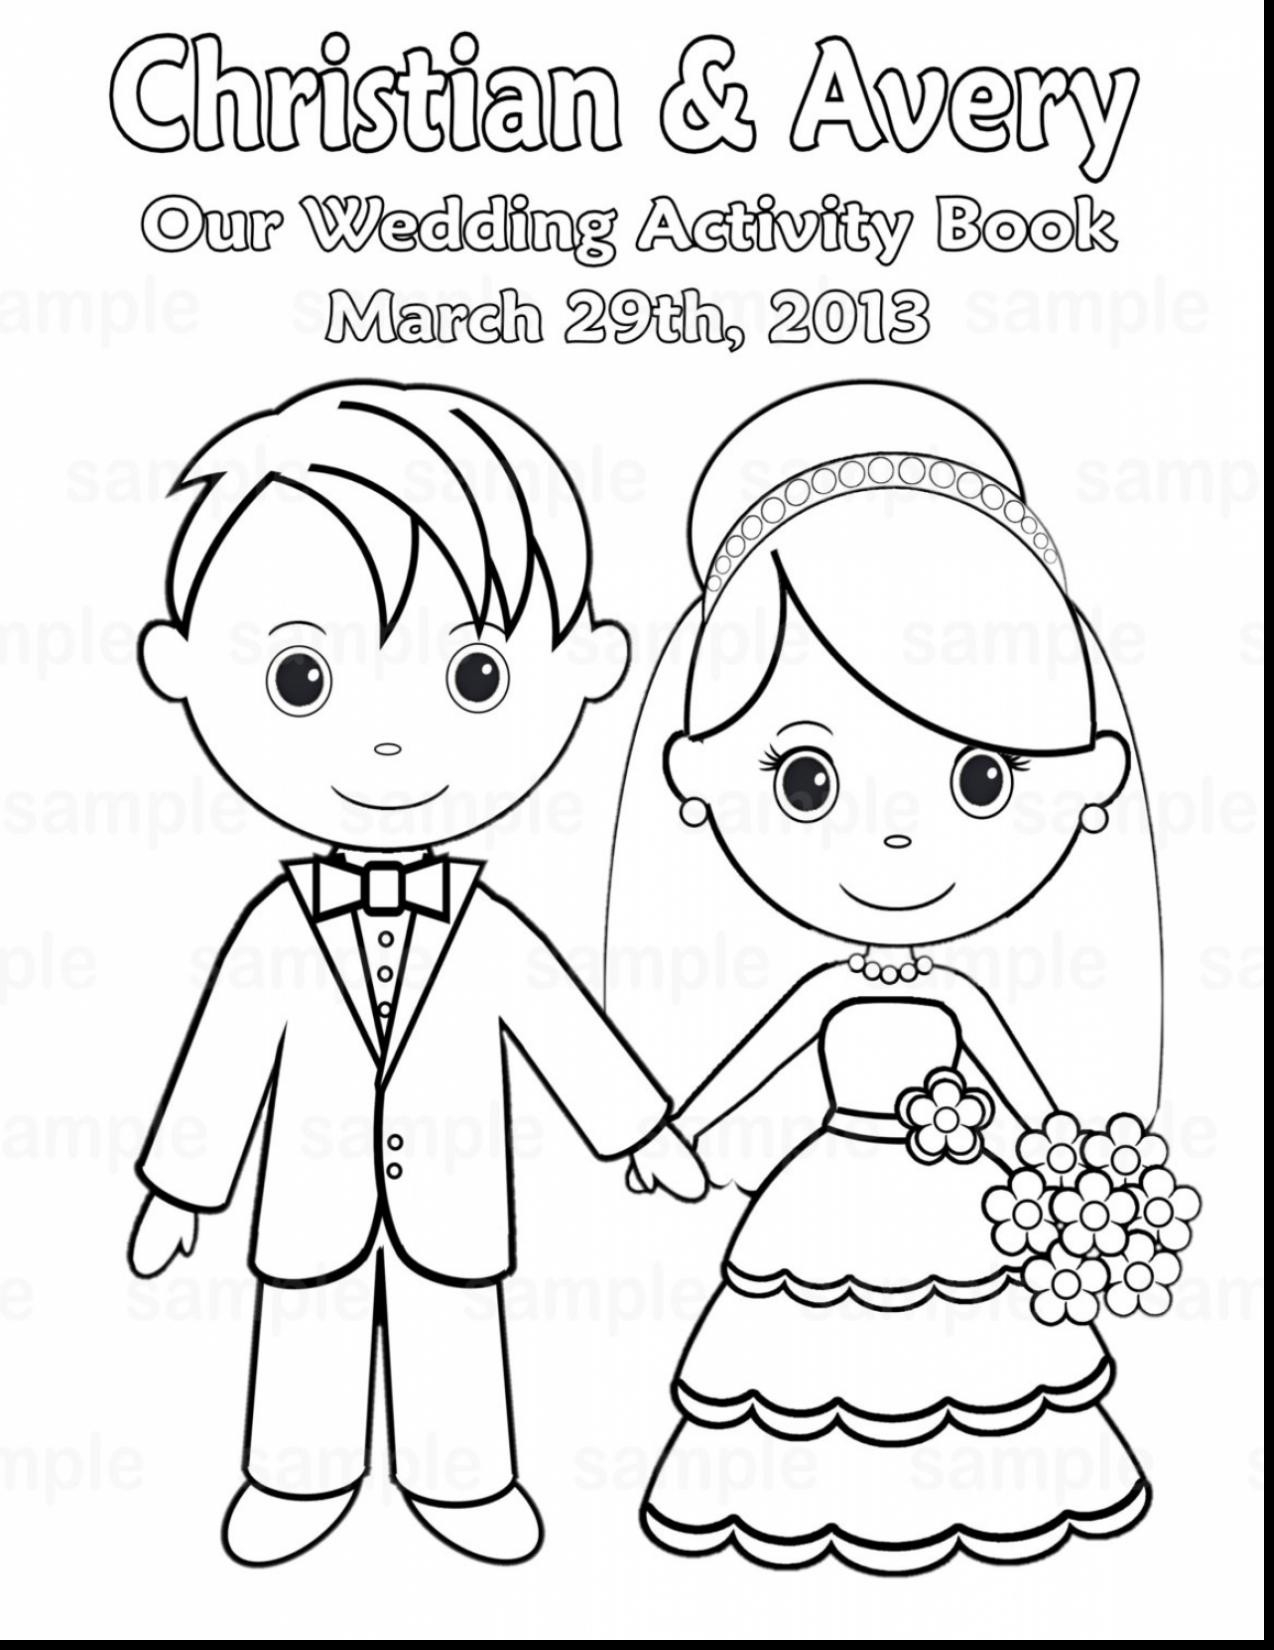 Wedding Coloring Pages Wedding Coloring Book Download 63586 Hypermachiavellism